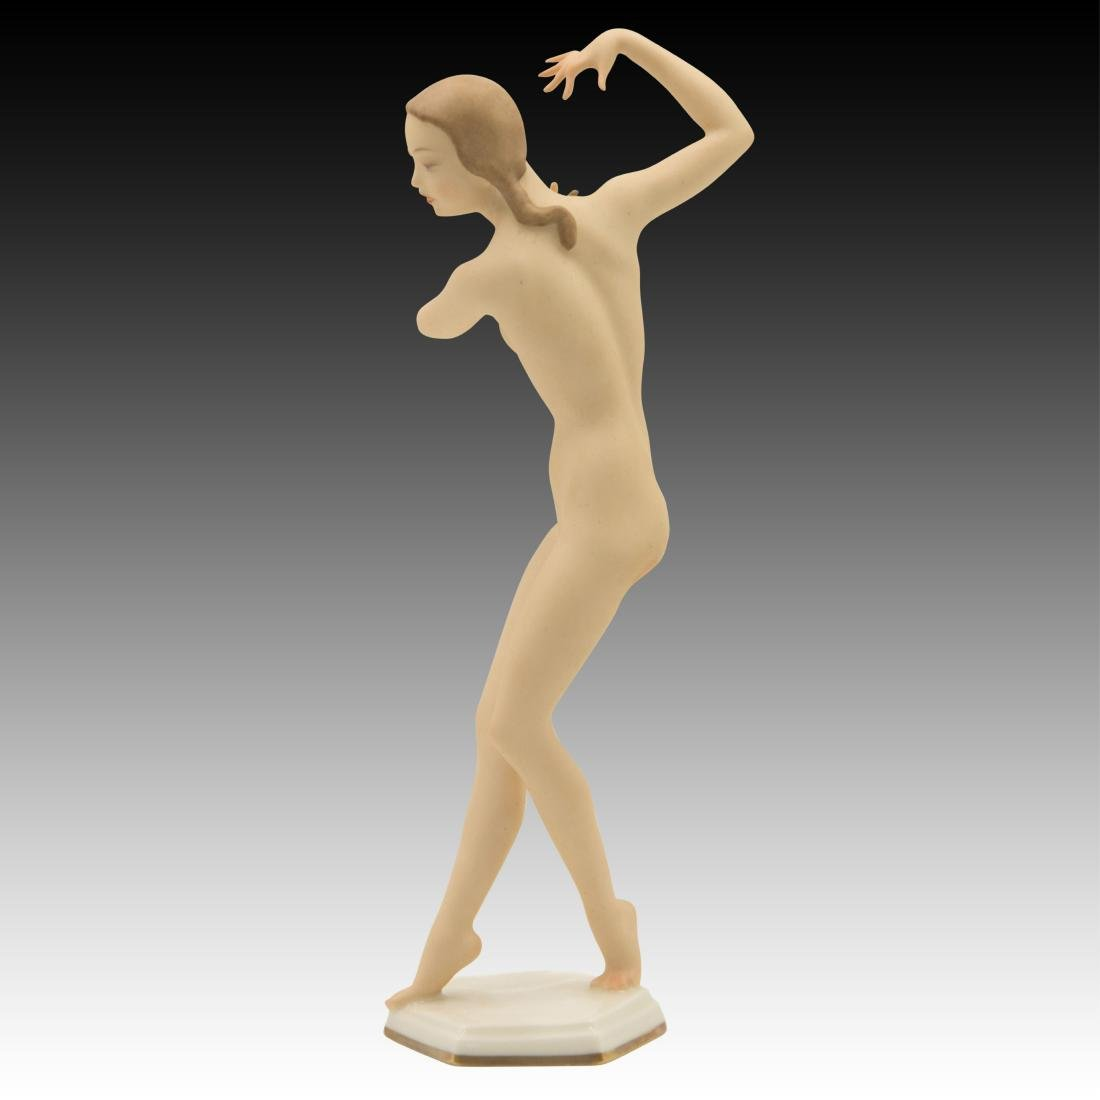 Hutschenreuther Nude Girl Dancing Figurine - 2